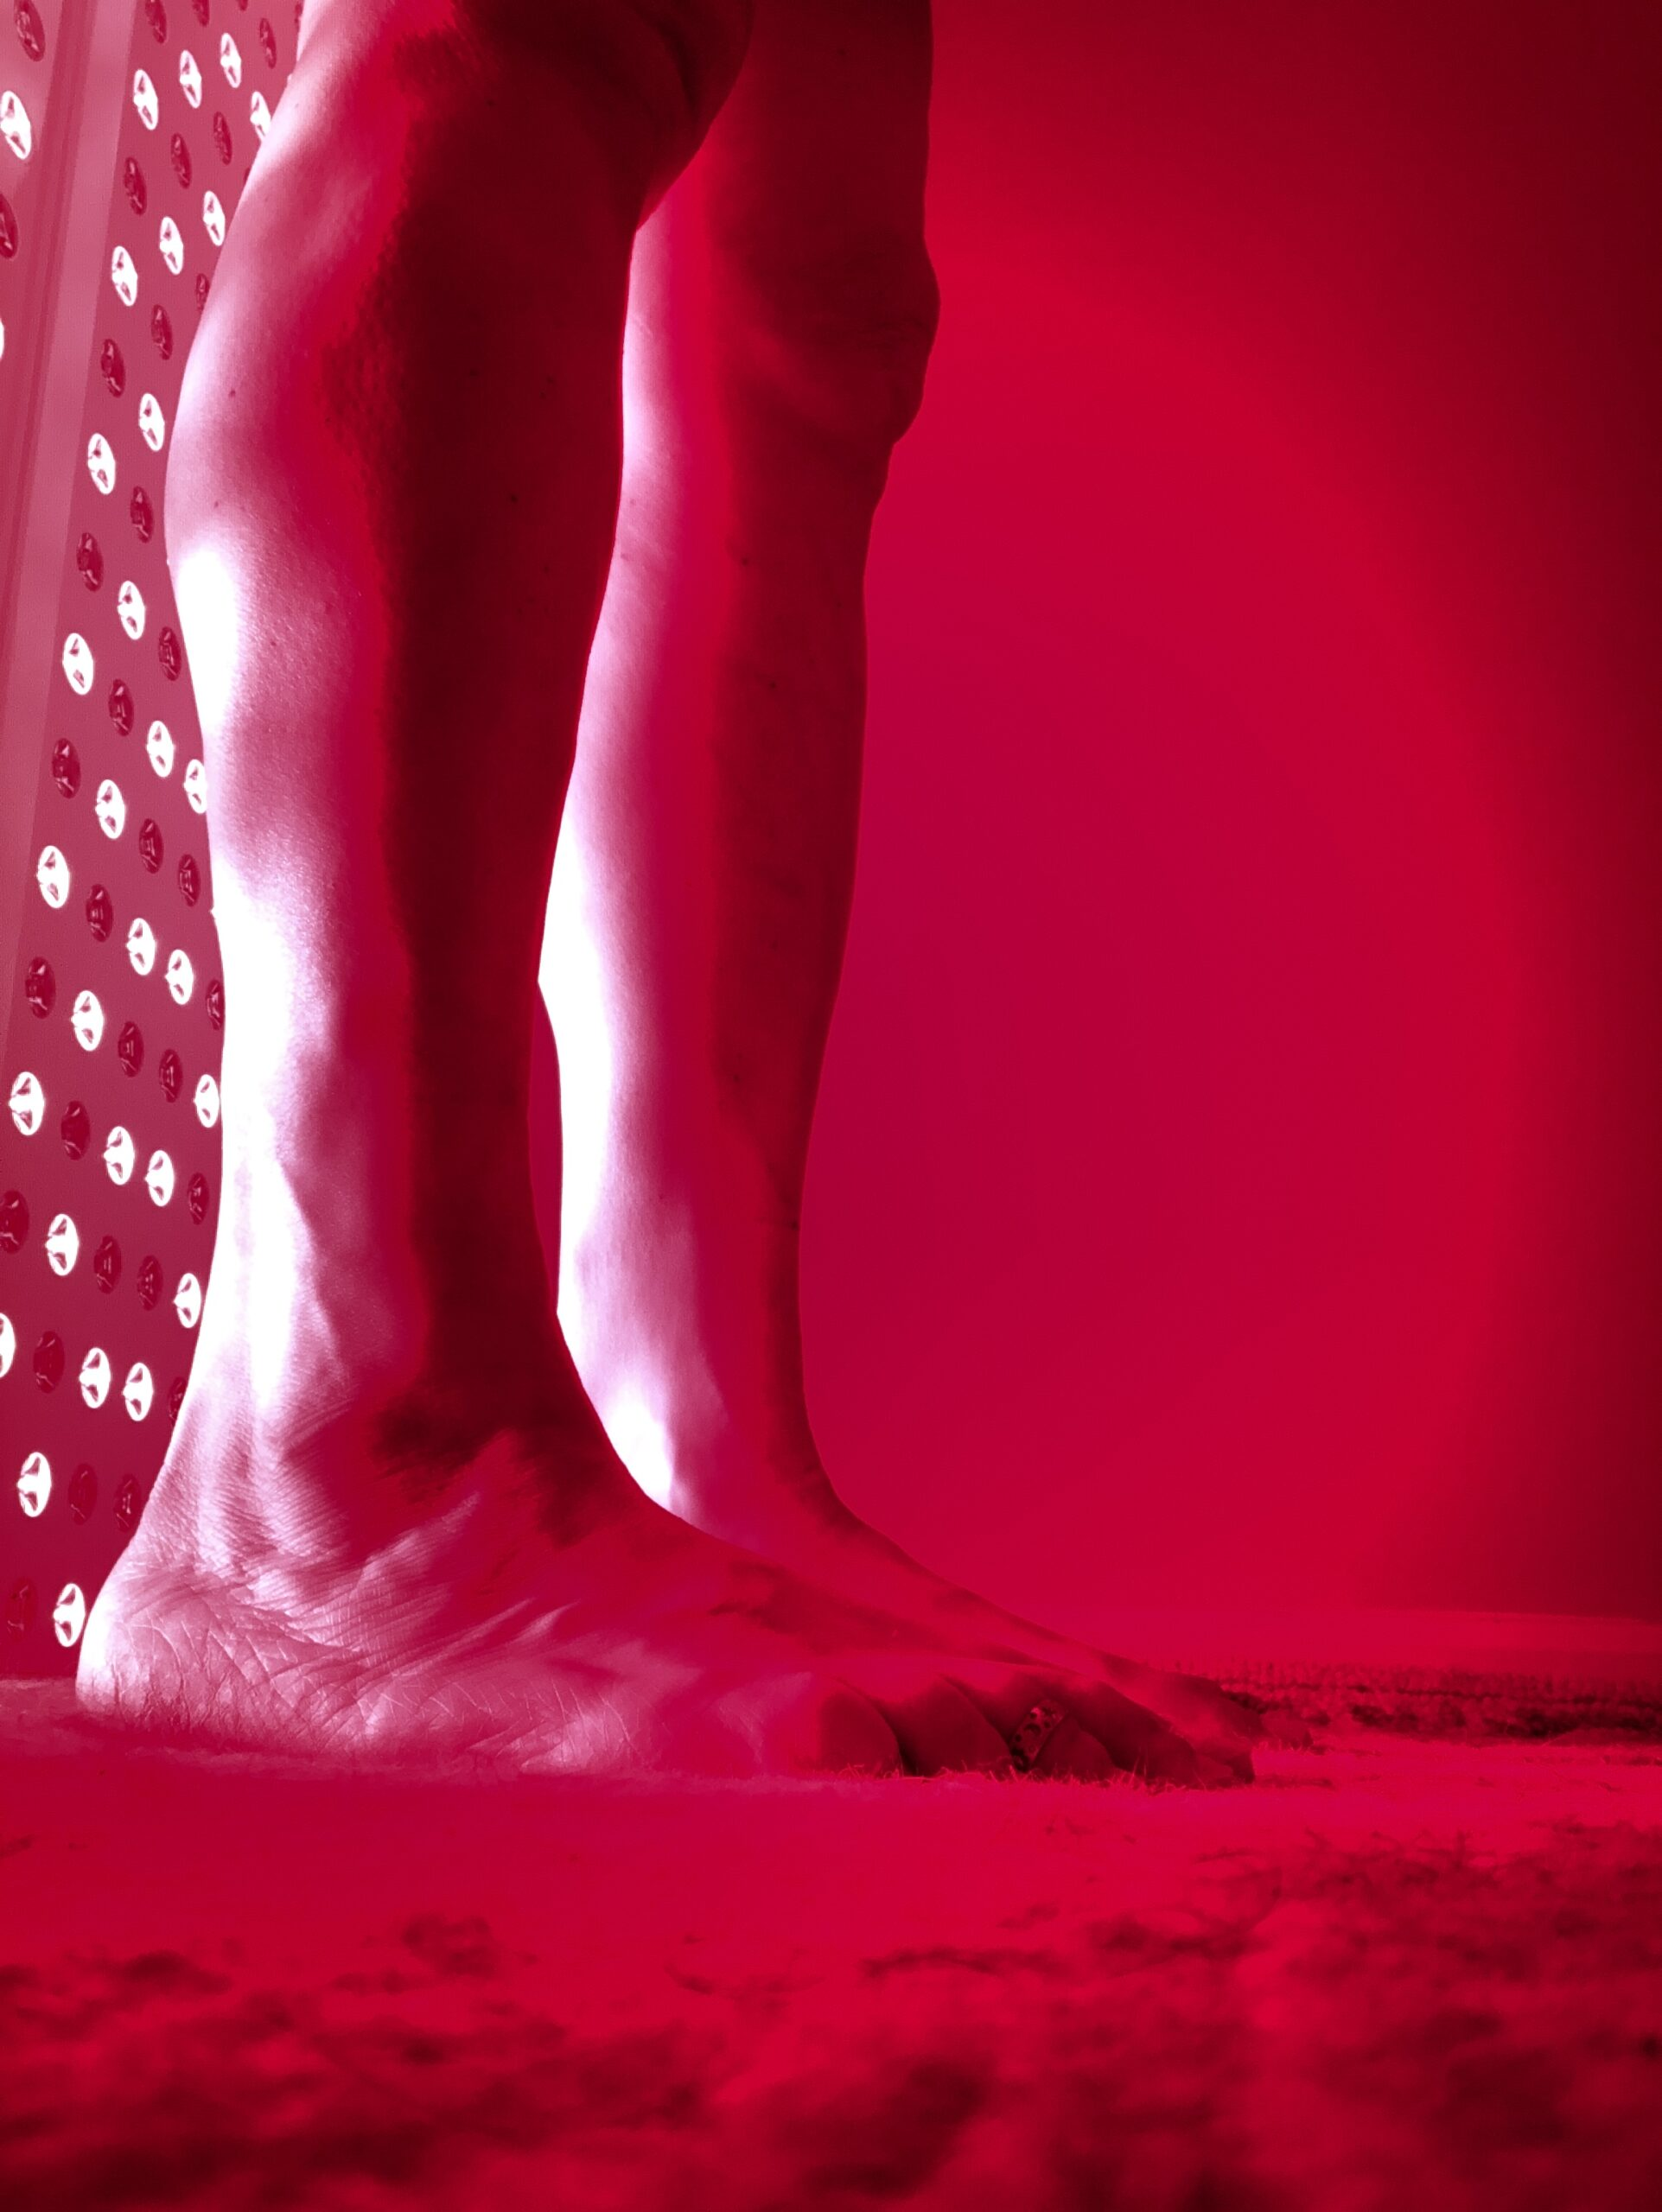 Red Light Therapy gives great looking skin and comfortable joints